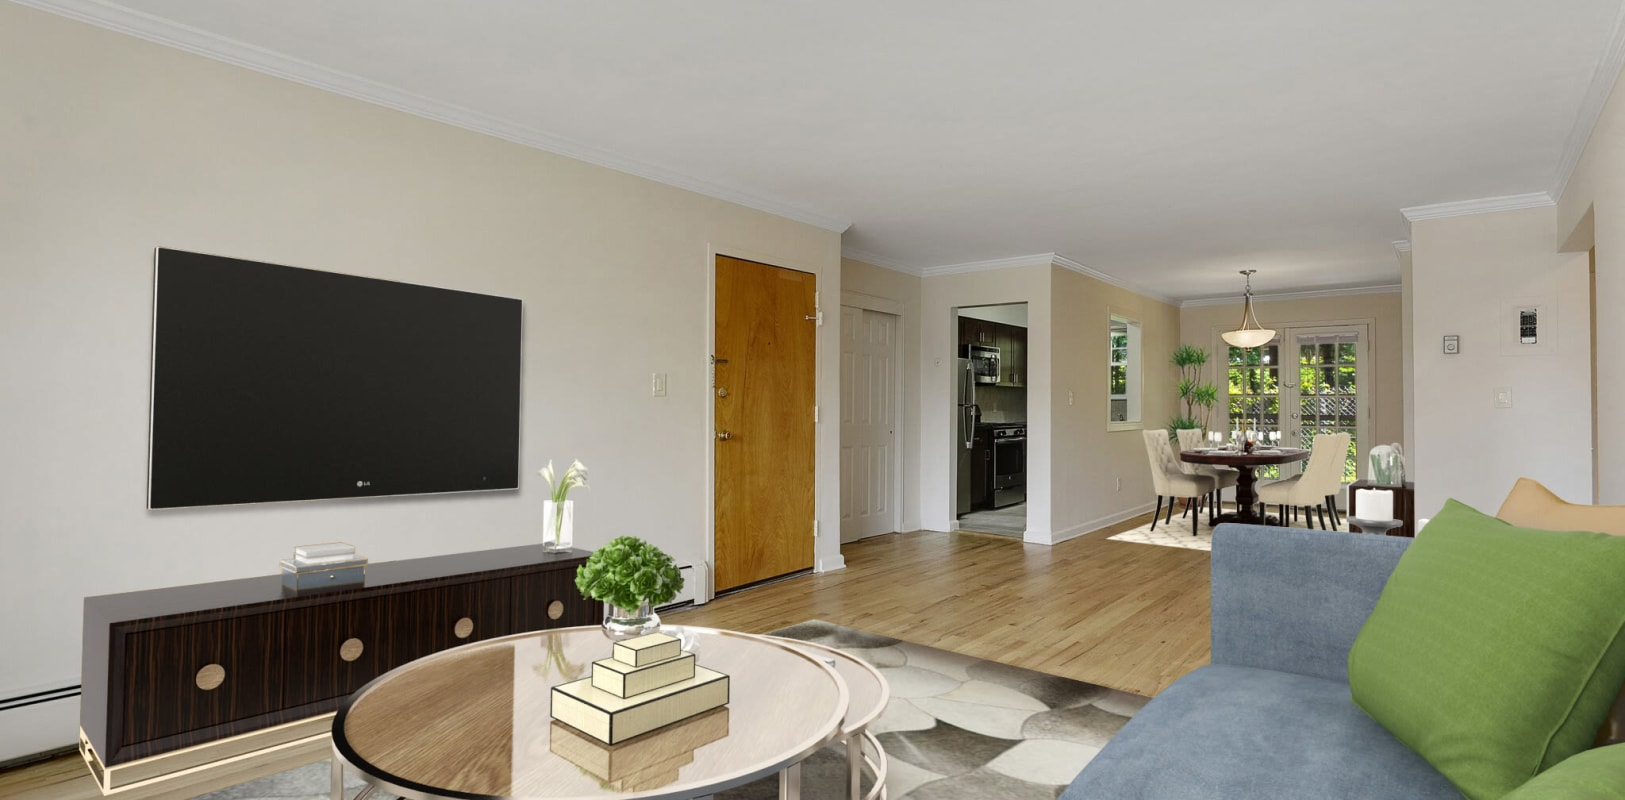 Livingroom with large wall mounted tv at Parkway East Apartments in Caldwell, New Jersey